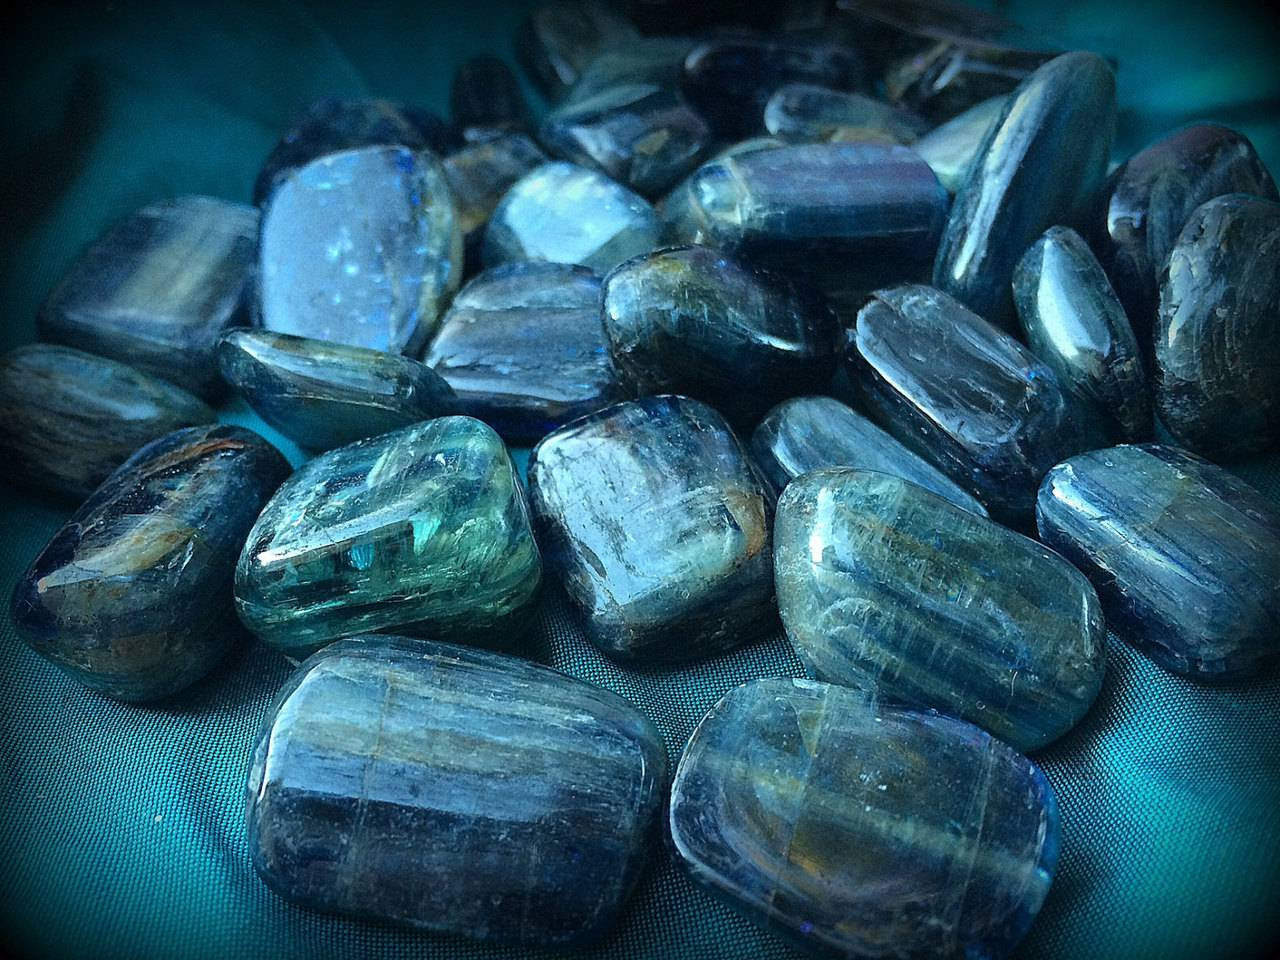 Tumbled Premium Blue Kyanite - The Centering Stone for Alignment & Balance